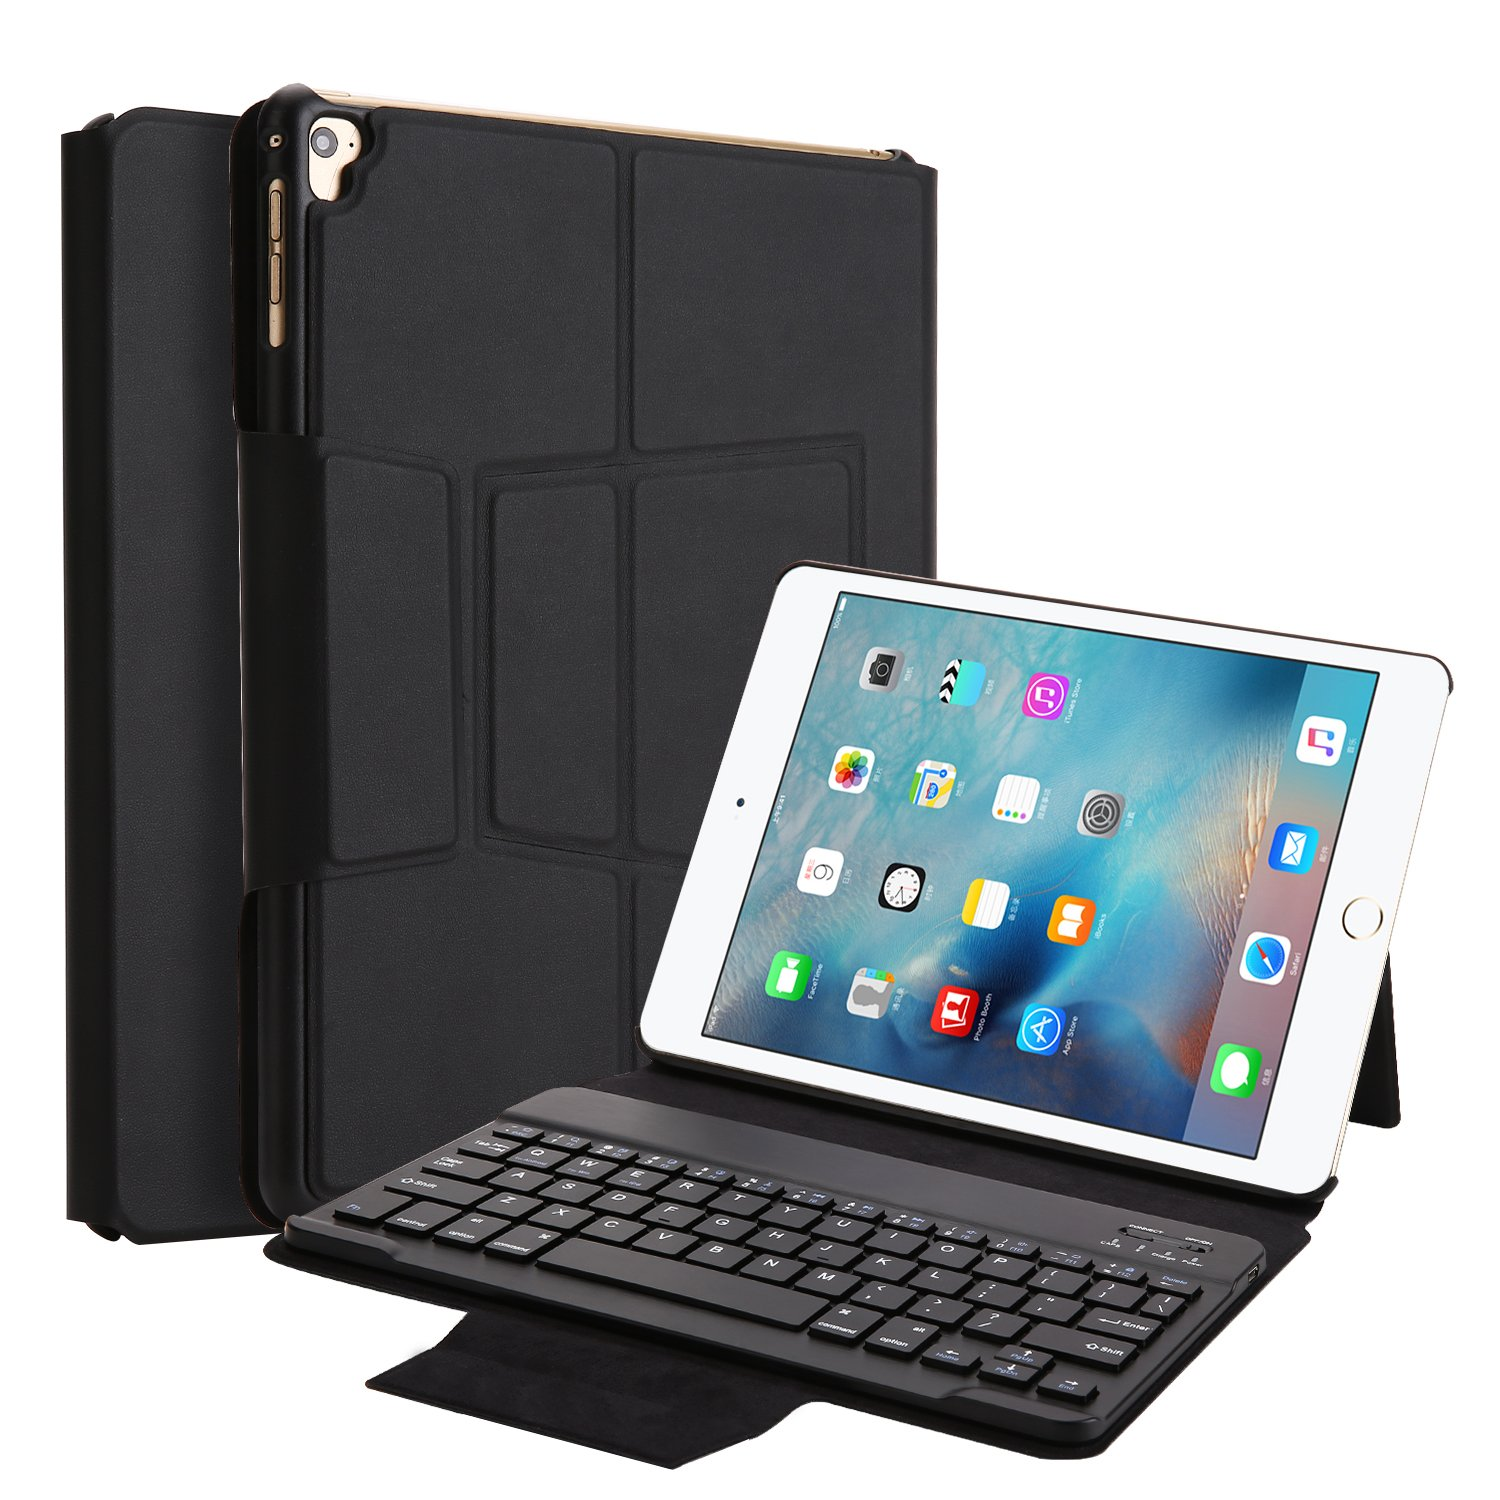 New iPad 9.7 2018 Keyboard Case, TechCode PU Leather Smart Case Stand Folio Cover with Detachable Wireless Bluetooth Keyboard for iPad Pro 9.7/2018 New iPad 6/2017 iPad 5/iPad air/air 2 (Black)